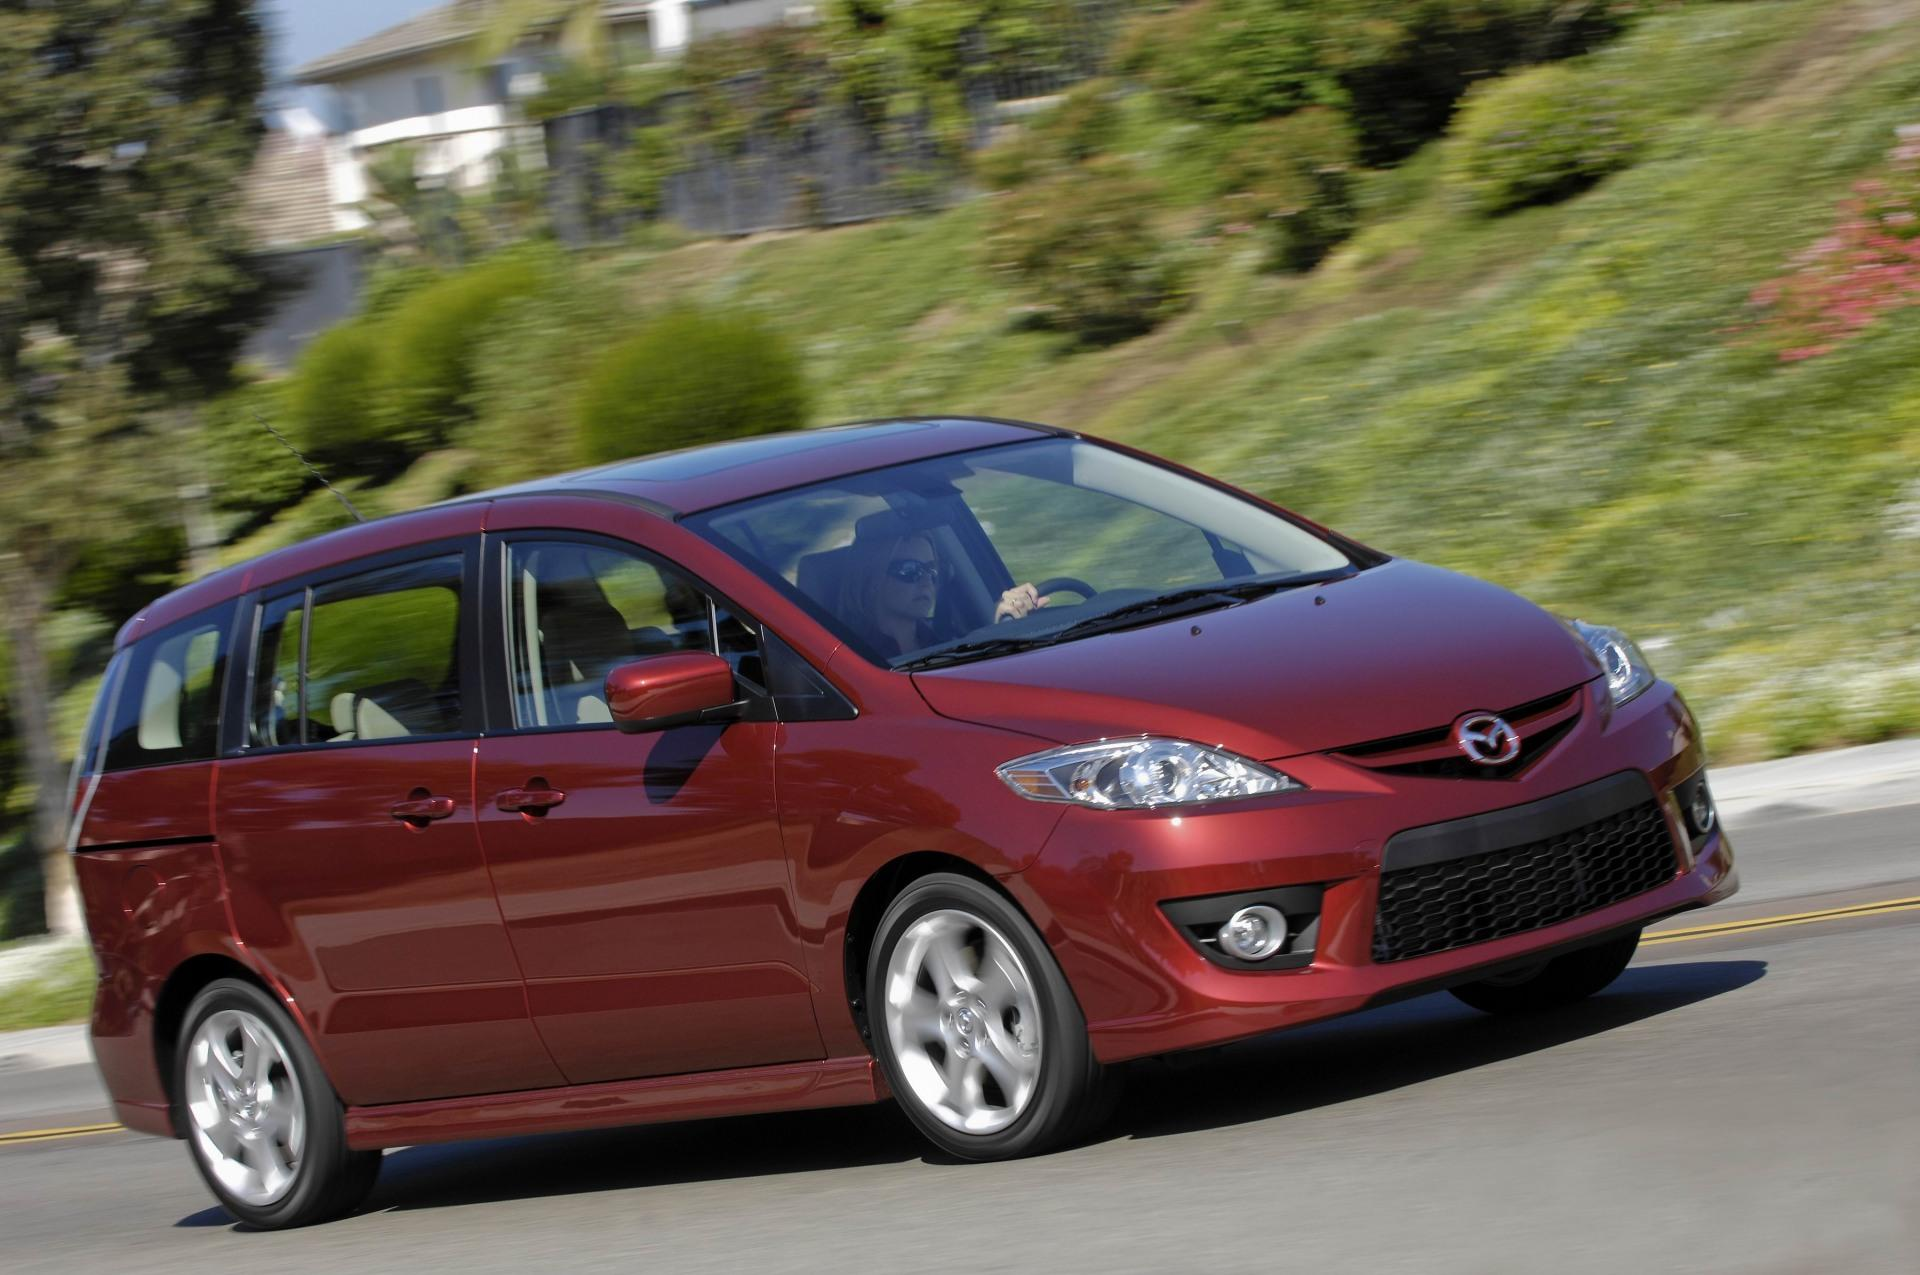 2010 Mazda 5 News And Information Conceptcarz Com